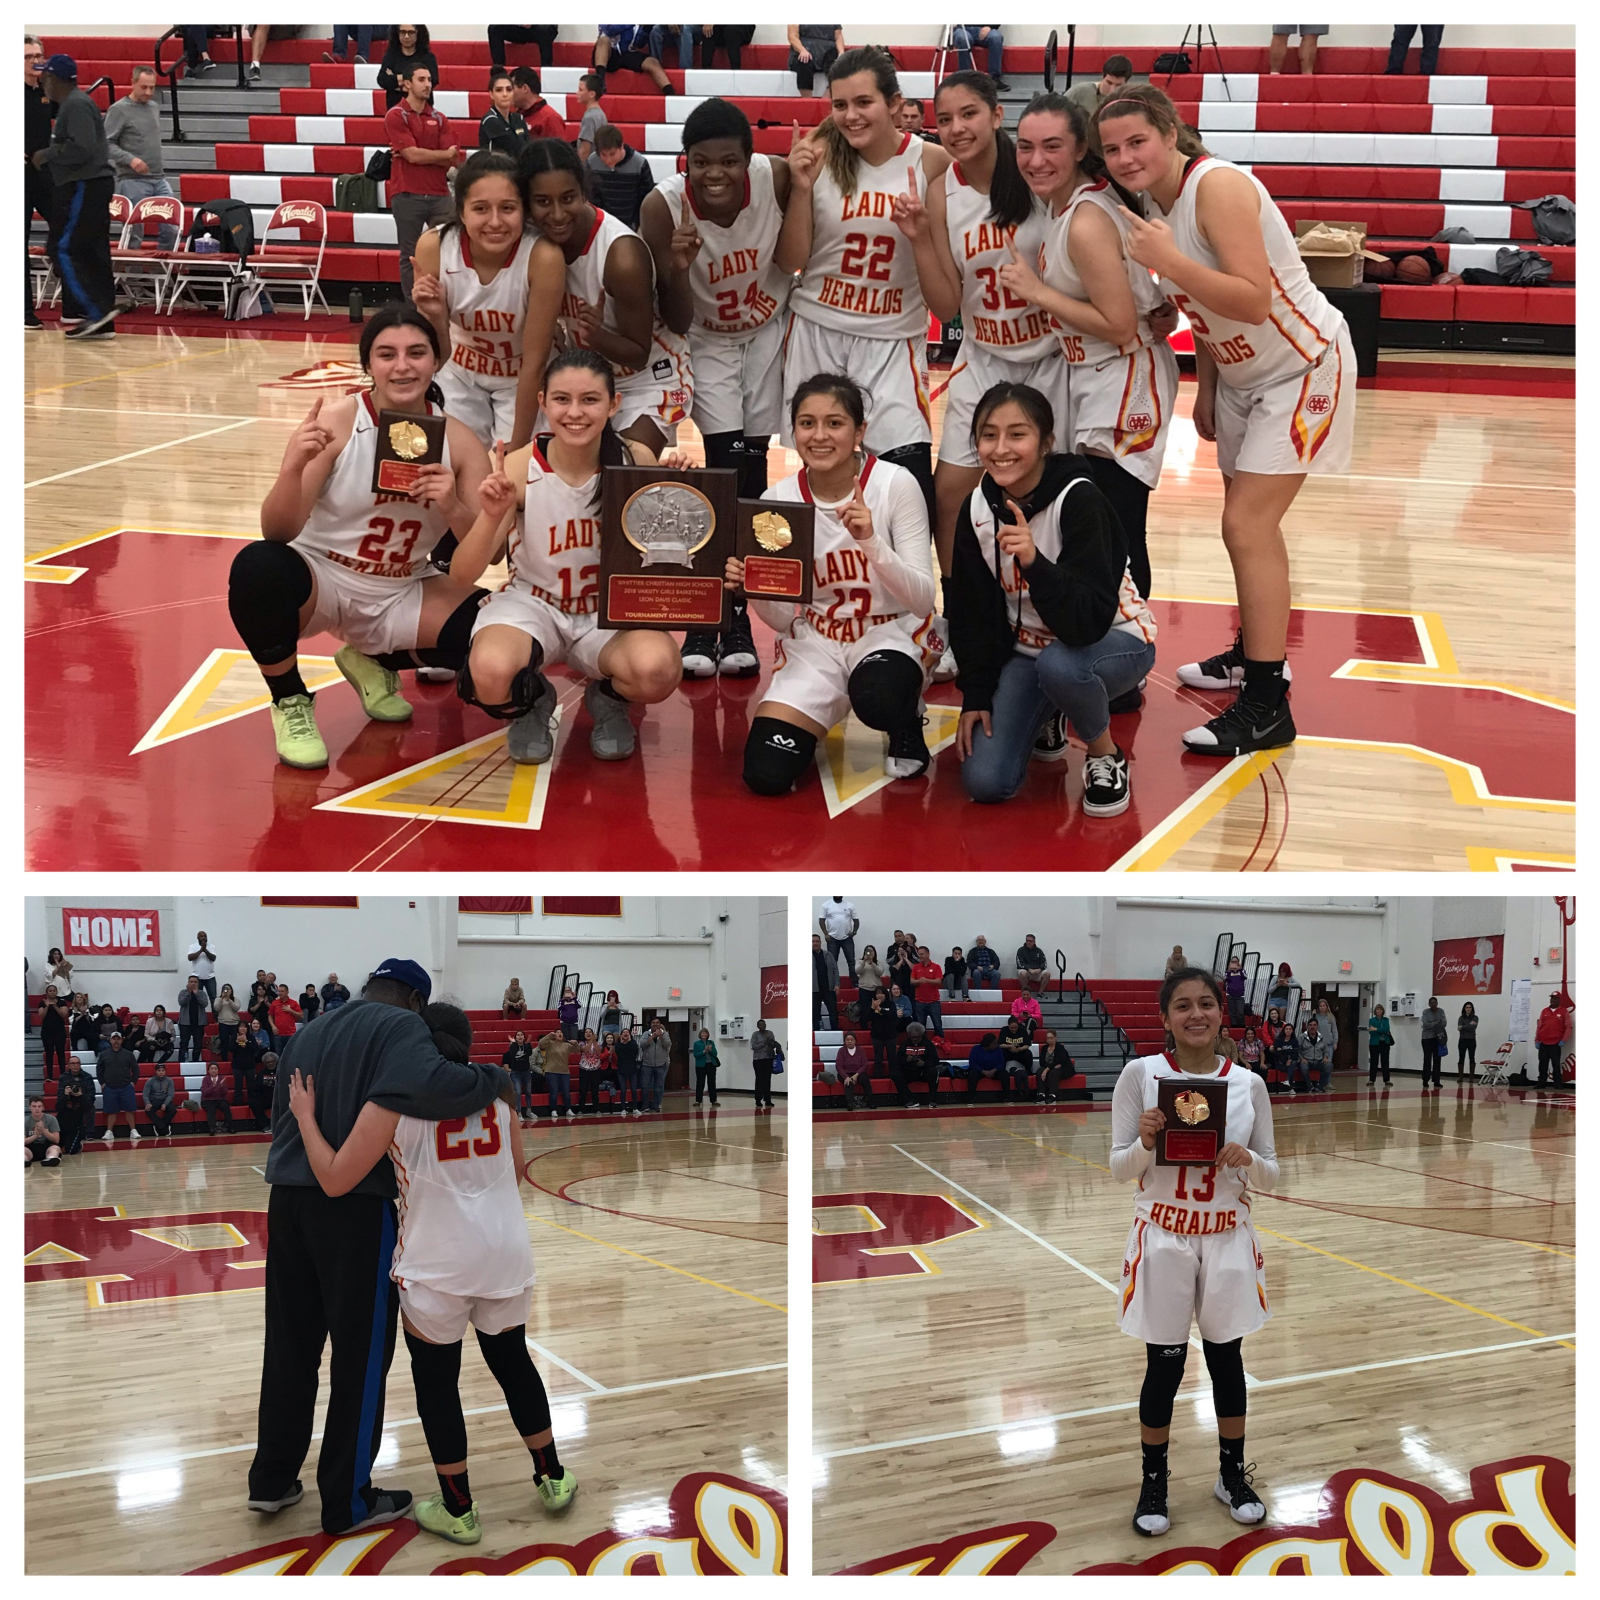 Lady Heralds win championship in 53-51 nail biter over El Rancho Dons